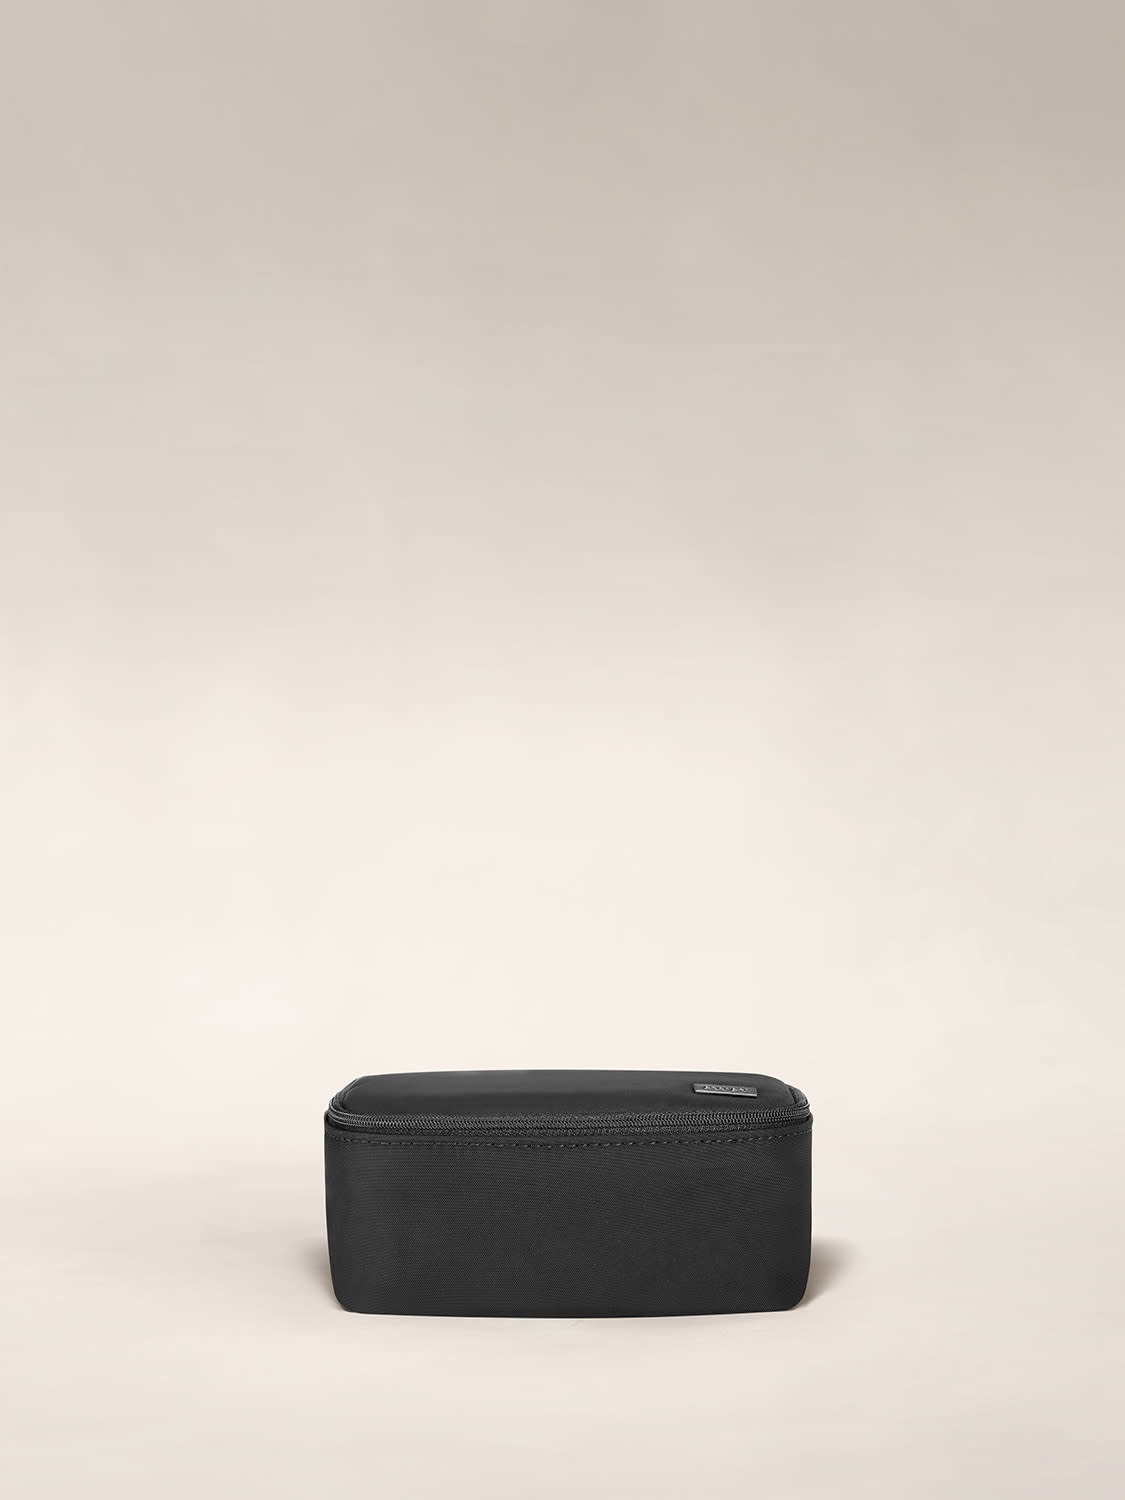 Front view of the away tech case in black